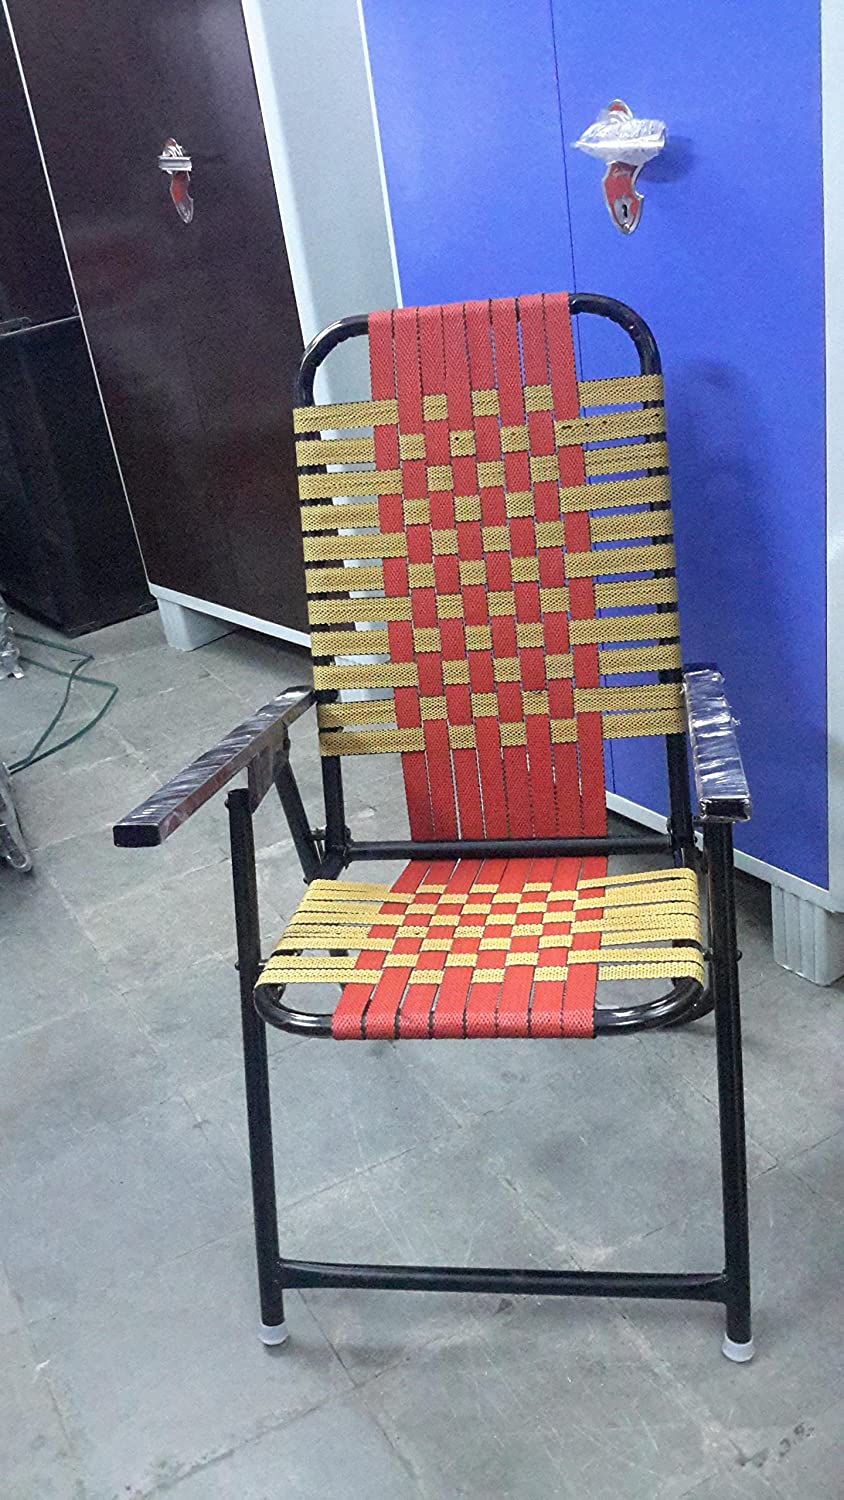 STUDY CHAIR Hallow Iron and Nawar Folding Study Chair (Yellow and